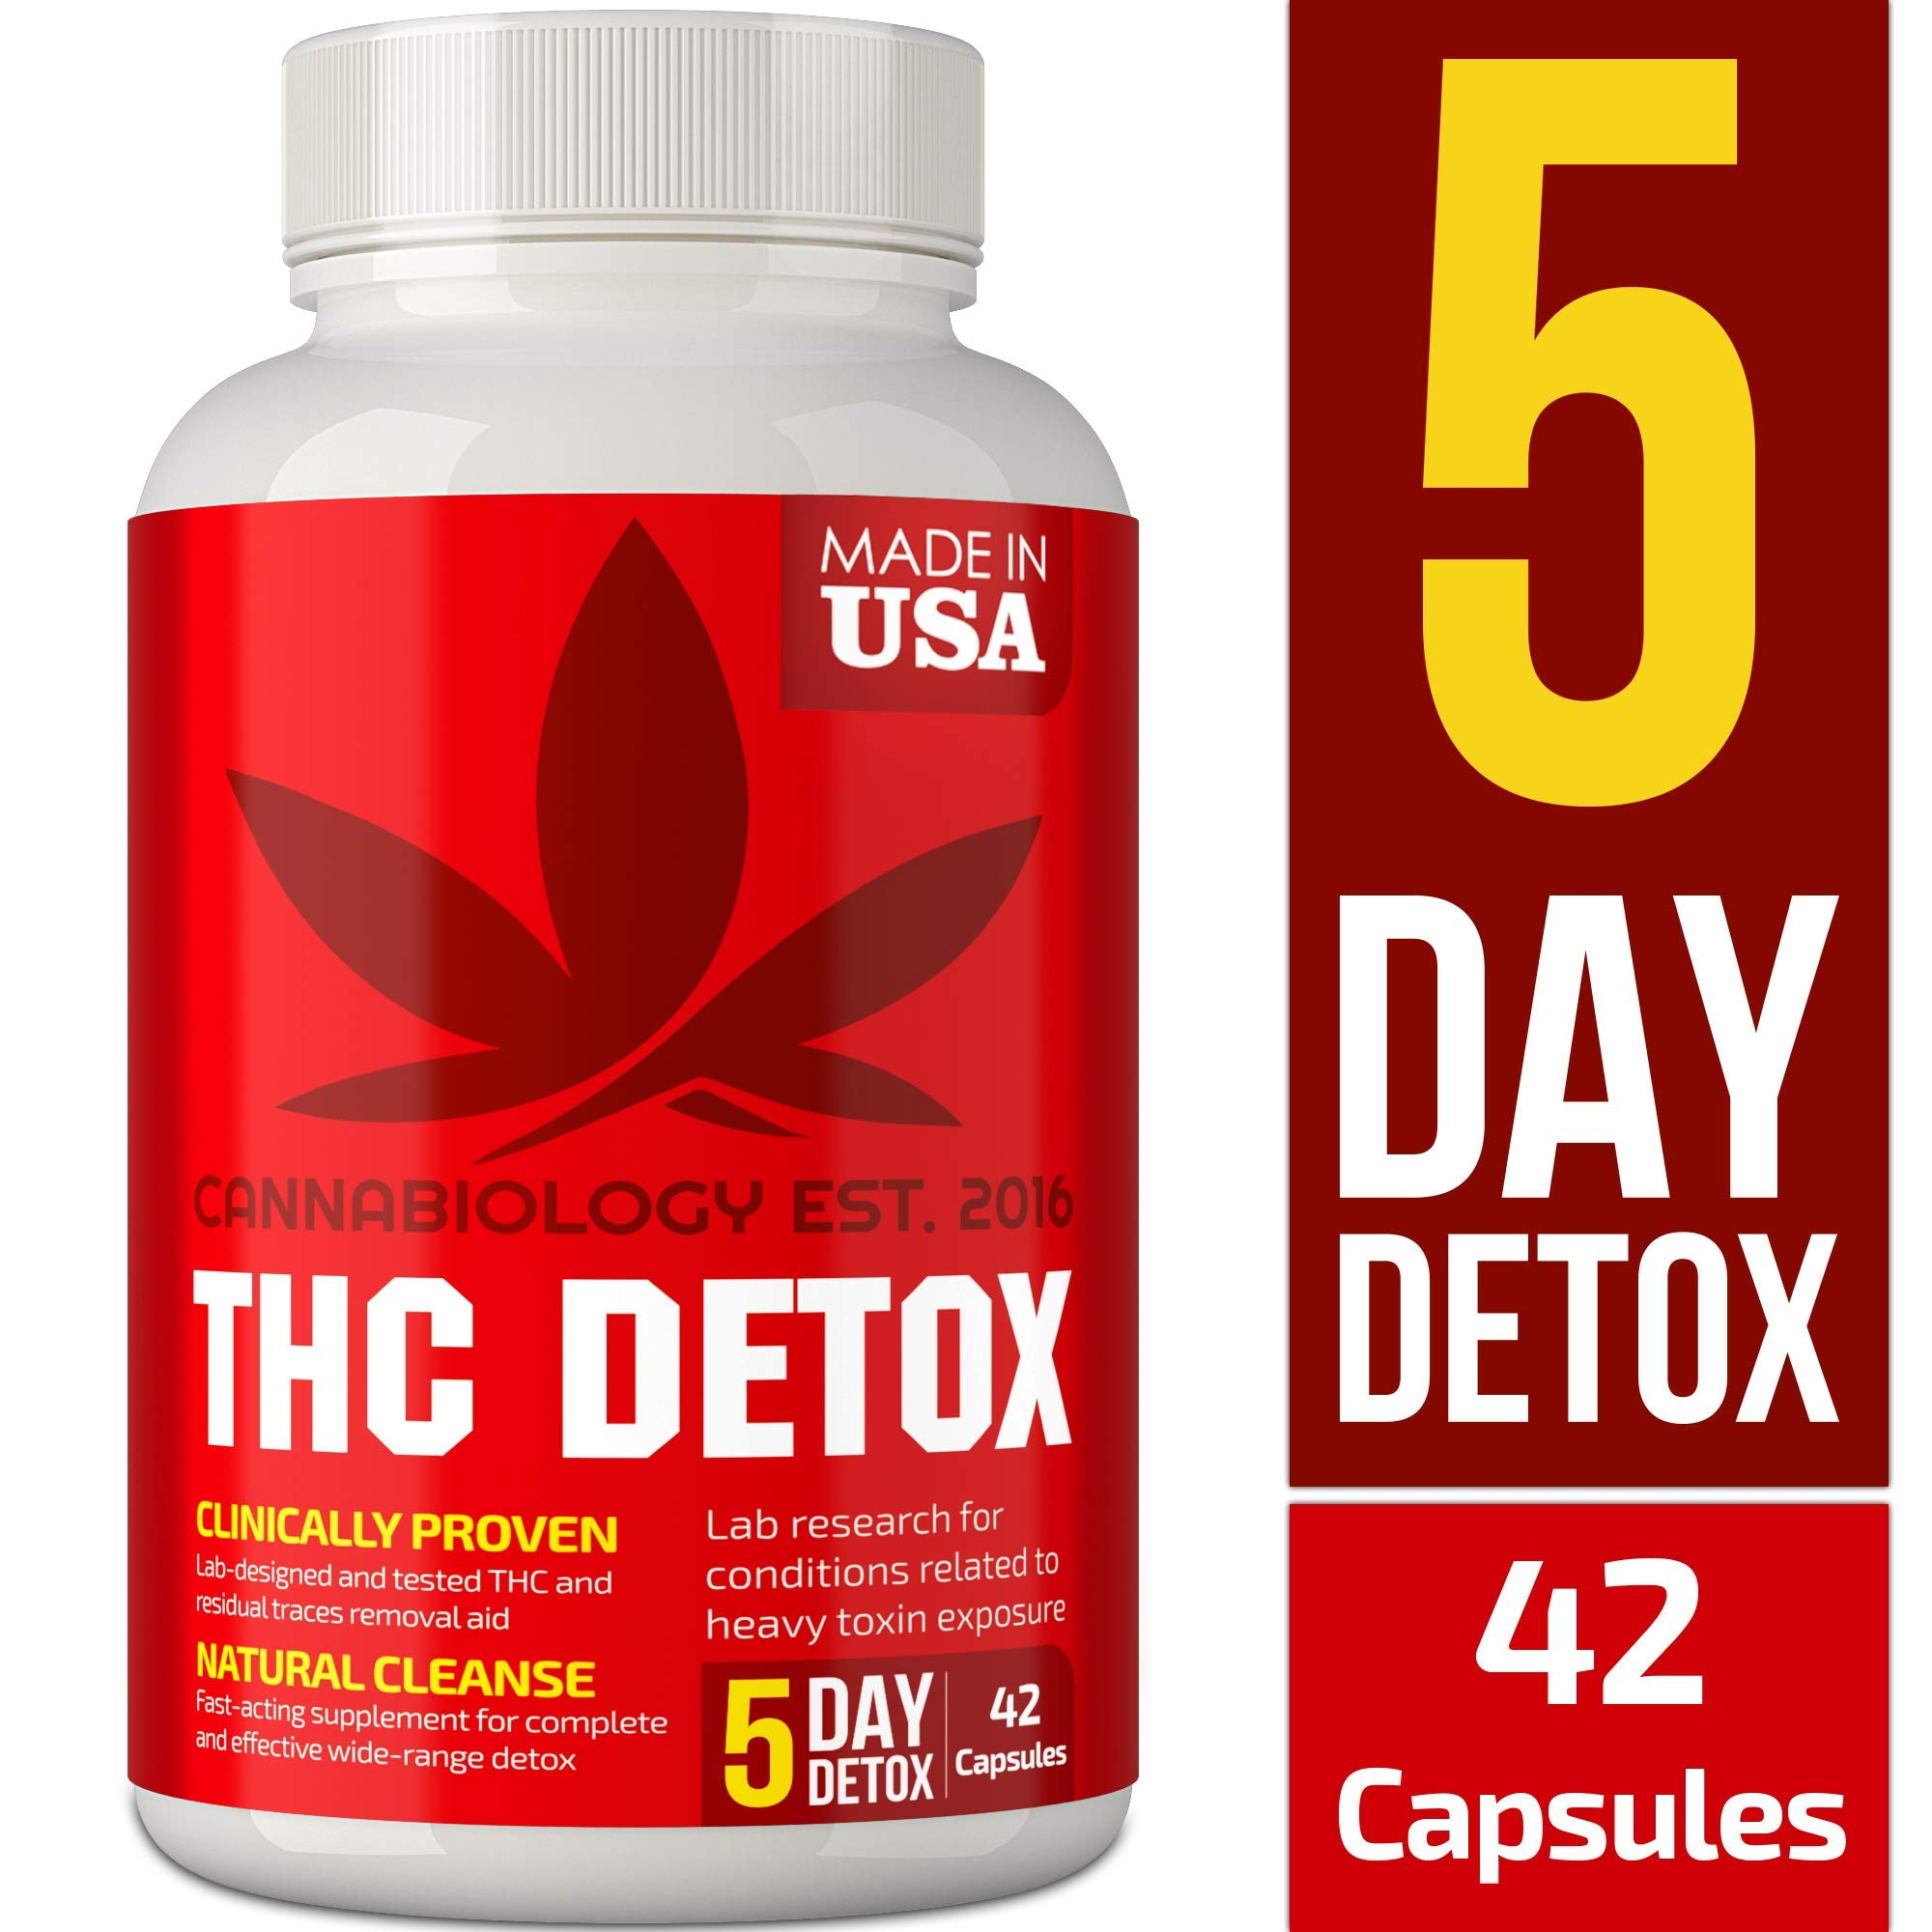 THC Detox Made in USA - BIO-Cleanse - Liver Detox, Urinary Tract & Kidney Cleanse - 5 Day Detox - Broad-Spectrum Toxin Cleanse - Natural THC Remover - Milk Thistle, Cranberry - Vegetarian Capsules by Cannabiology Est. 2016